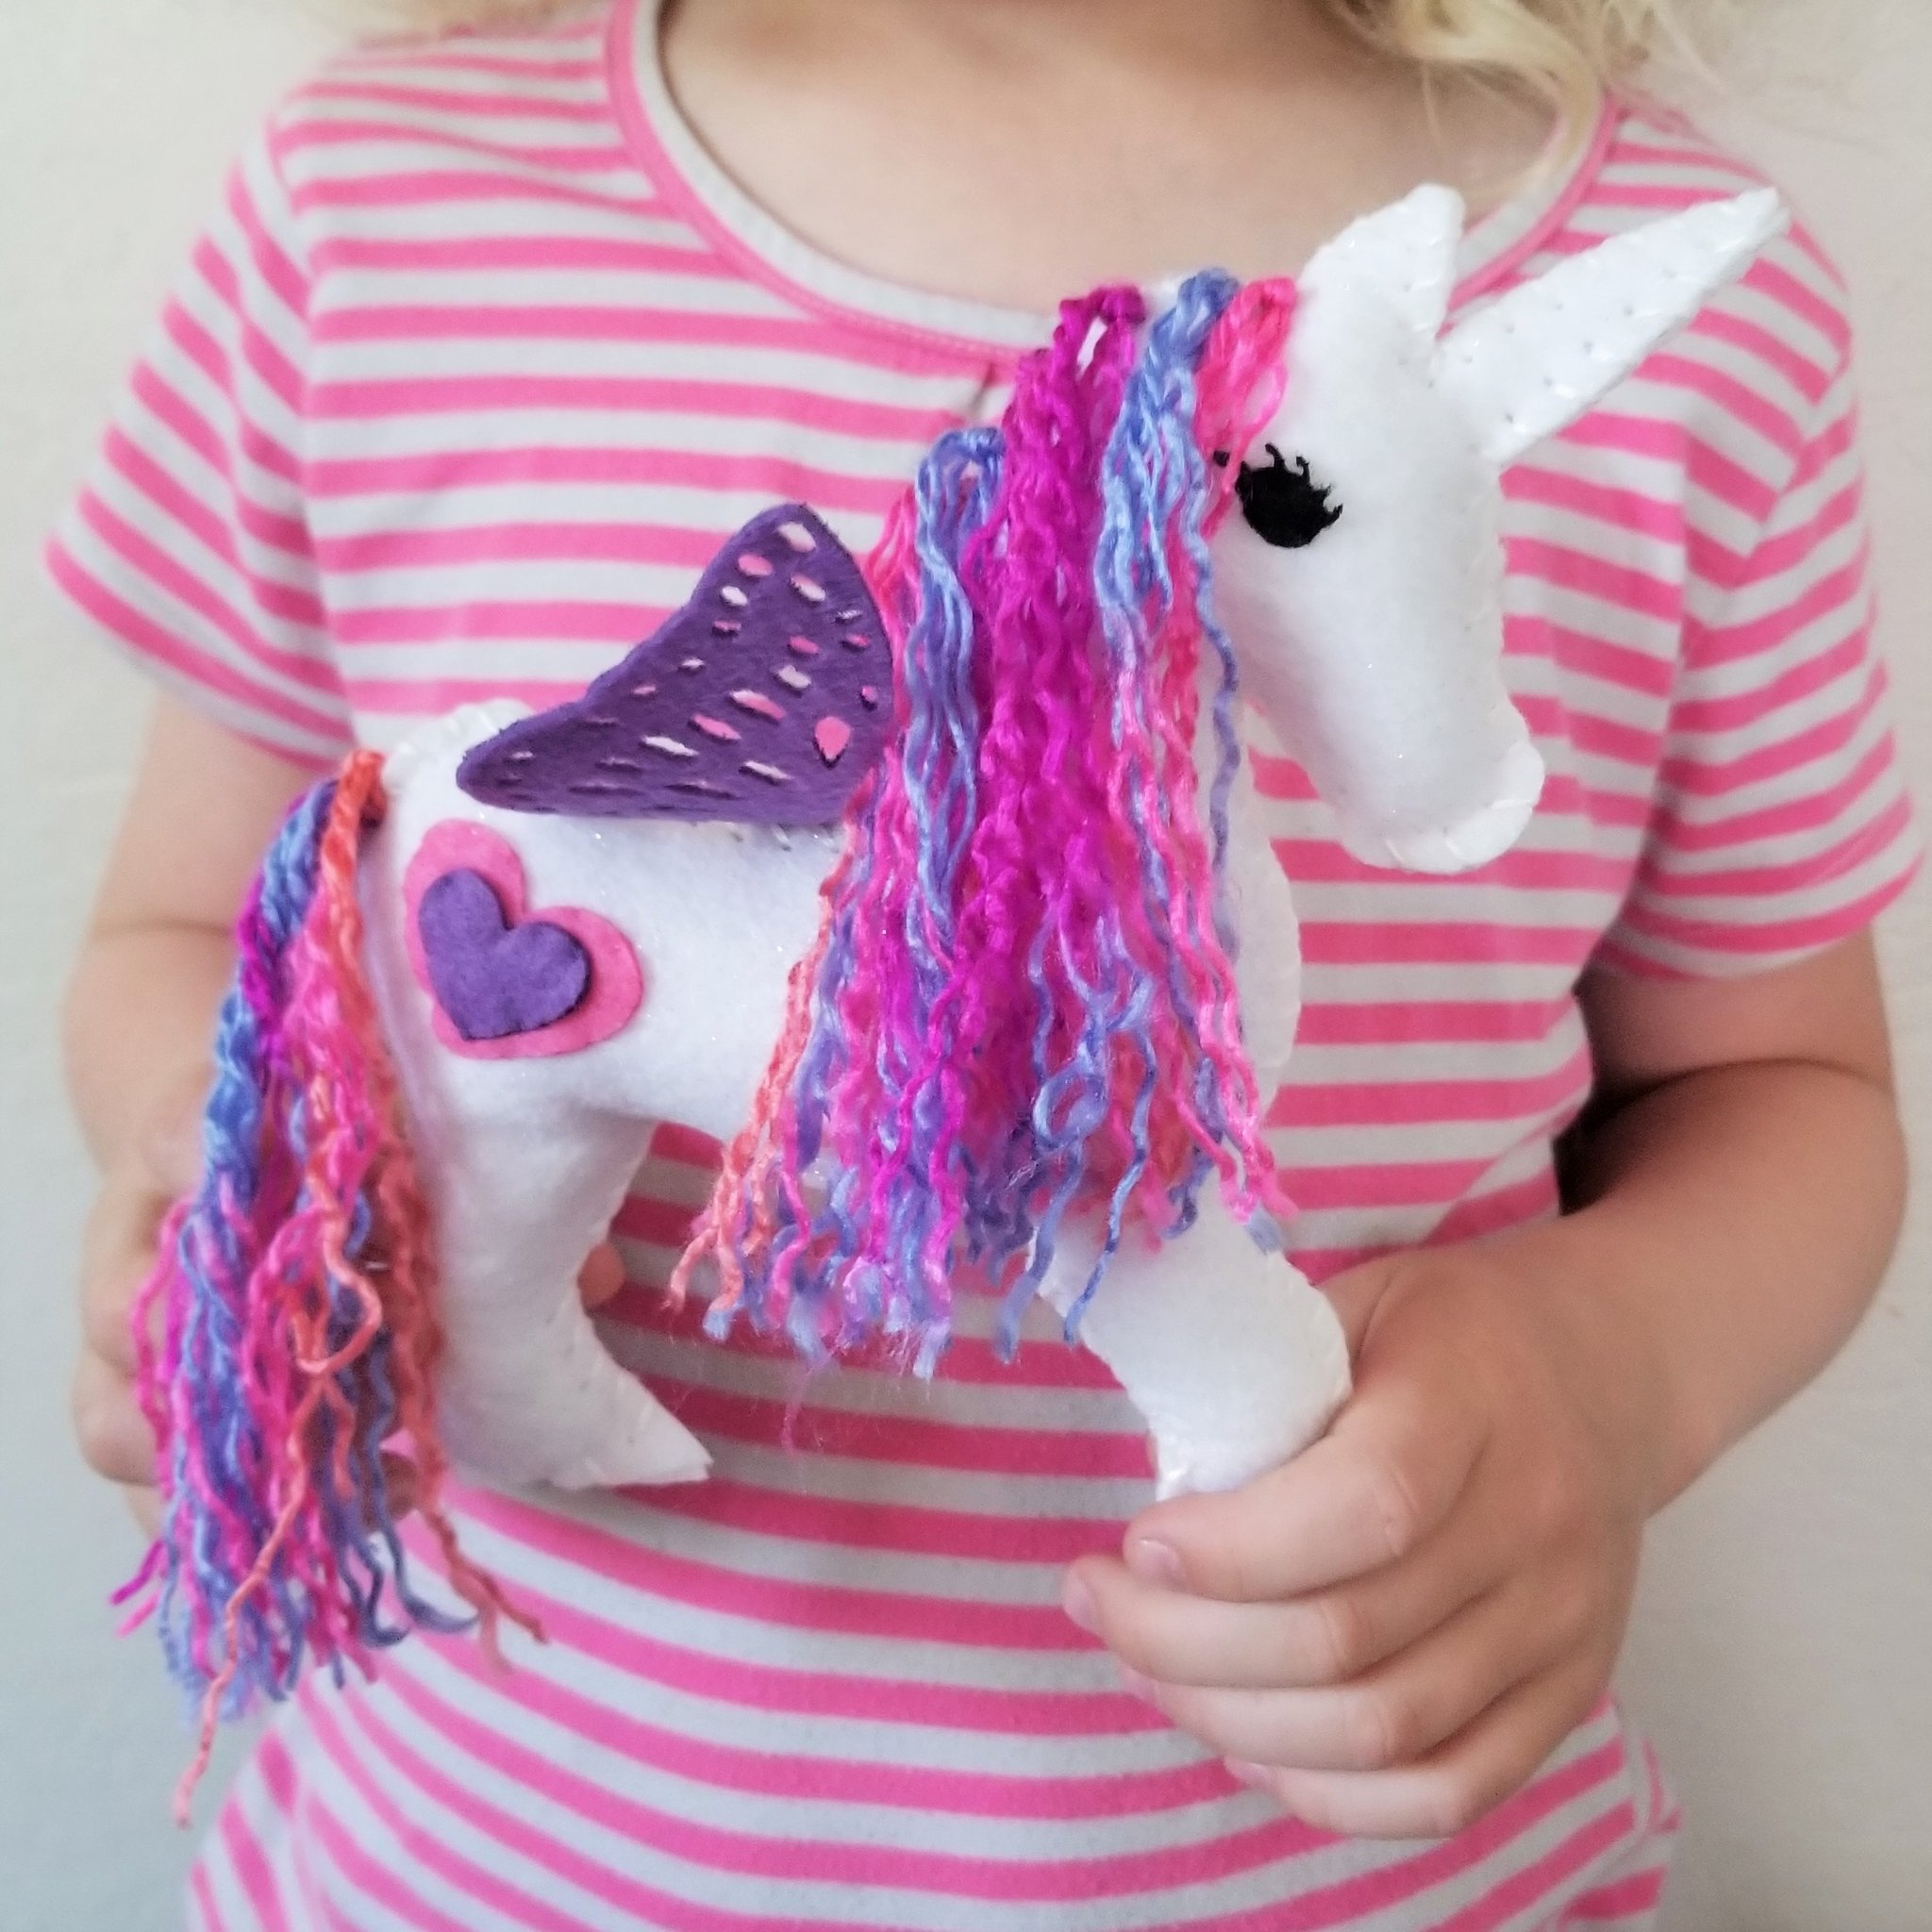 Wildflower Toys Unicorn Sewing Kit Girls - Felt Craft Kit Beginners ages 7+ - Makes 2 Glitter White Felt Stuffed Unicorns